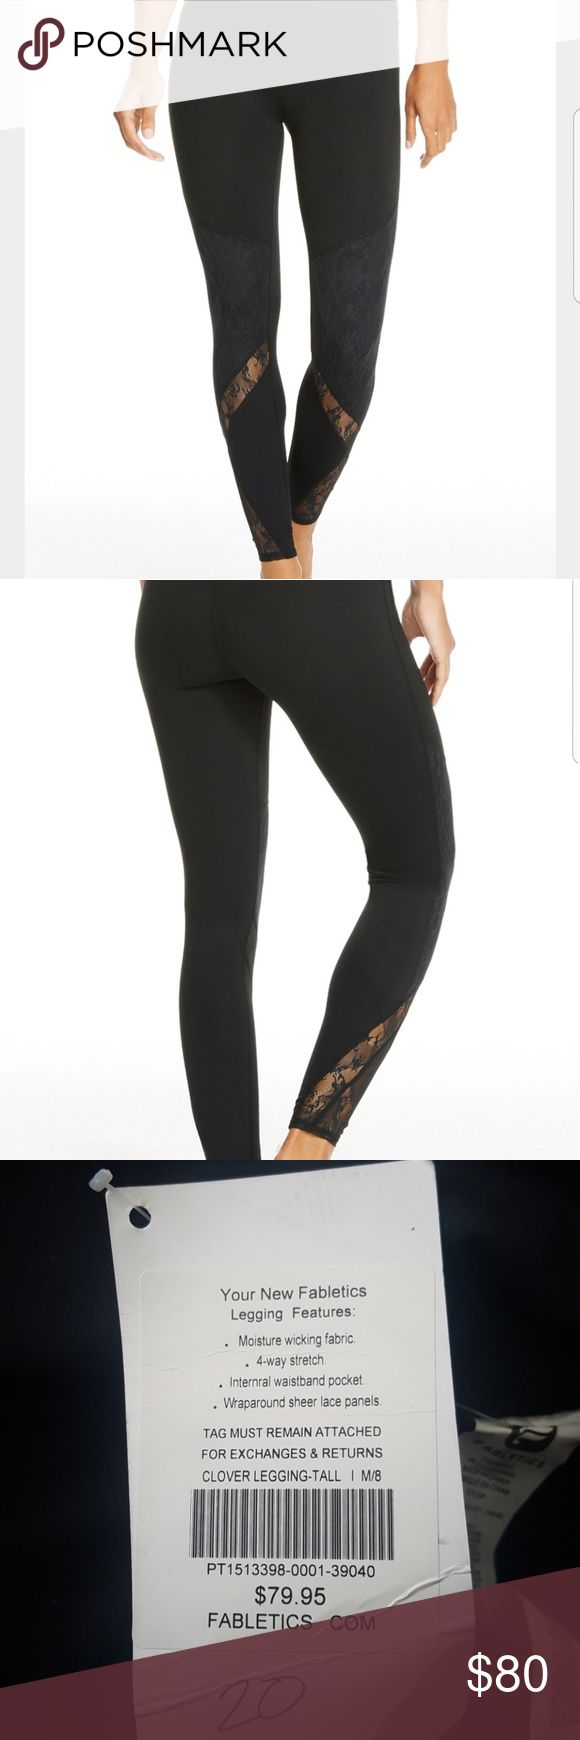 Fabletics clover legging-Tall When you bundle 3 items or more, I'll give you a discount just send an offer and we'll take it from there. If you guys could leave a nice review in the comment area once shipment is receive, that would be highly appreciated. In case of any inquiries feel free to reach out to me at tmarcos47@yahoo.com.  Thank you  Shipping dates Mondays & Thursdays Fabletics Pants Leggings